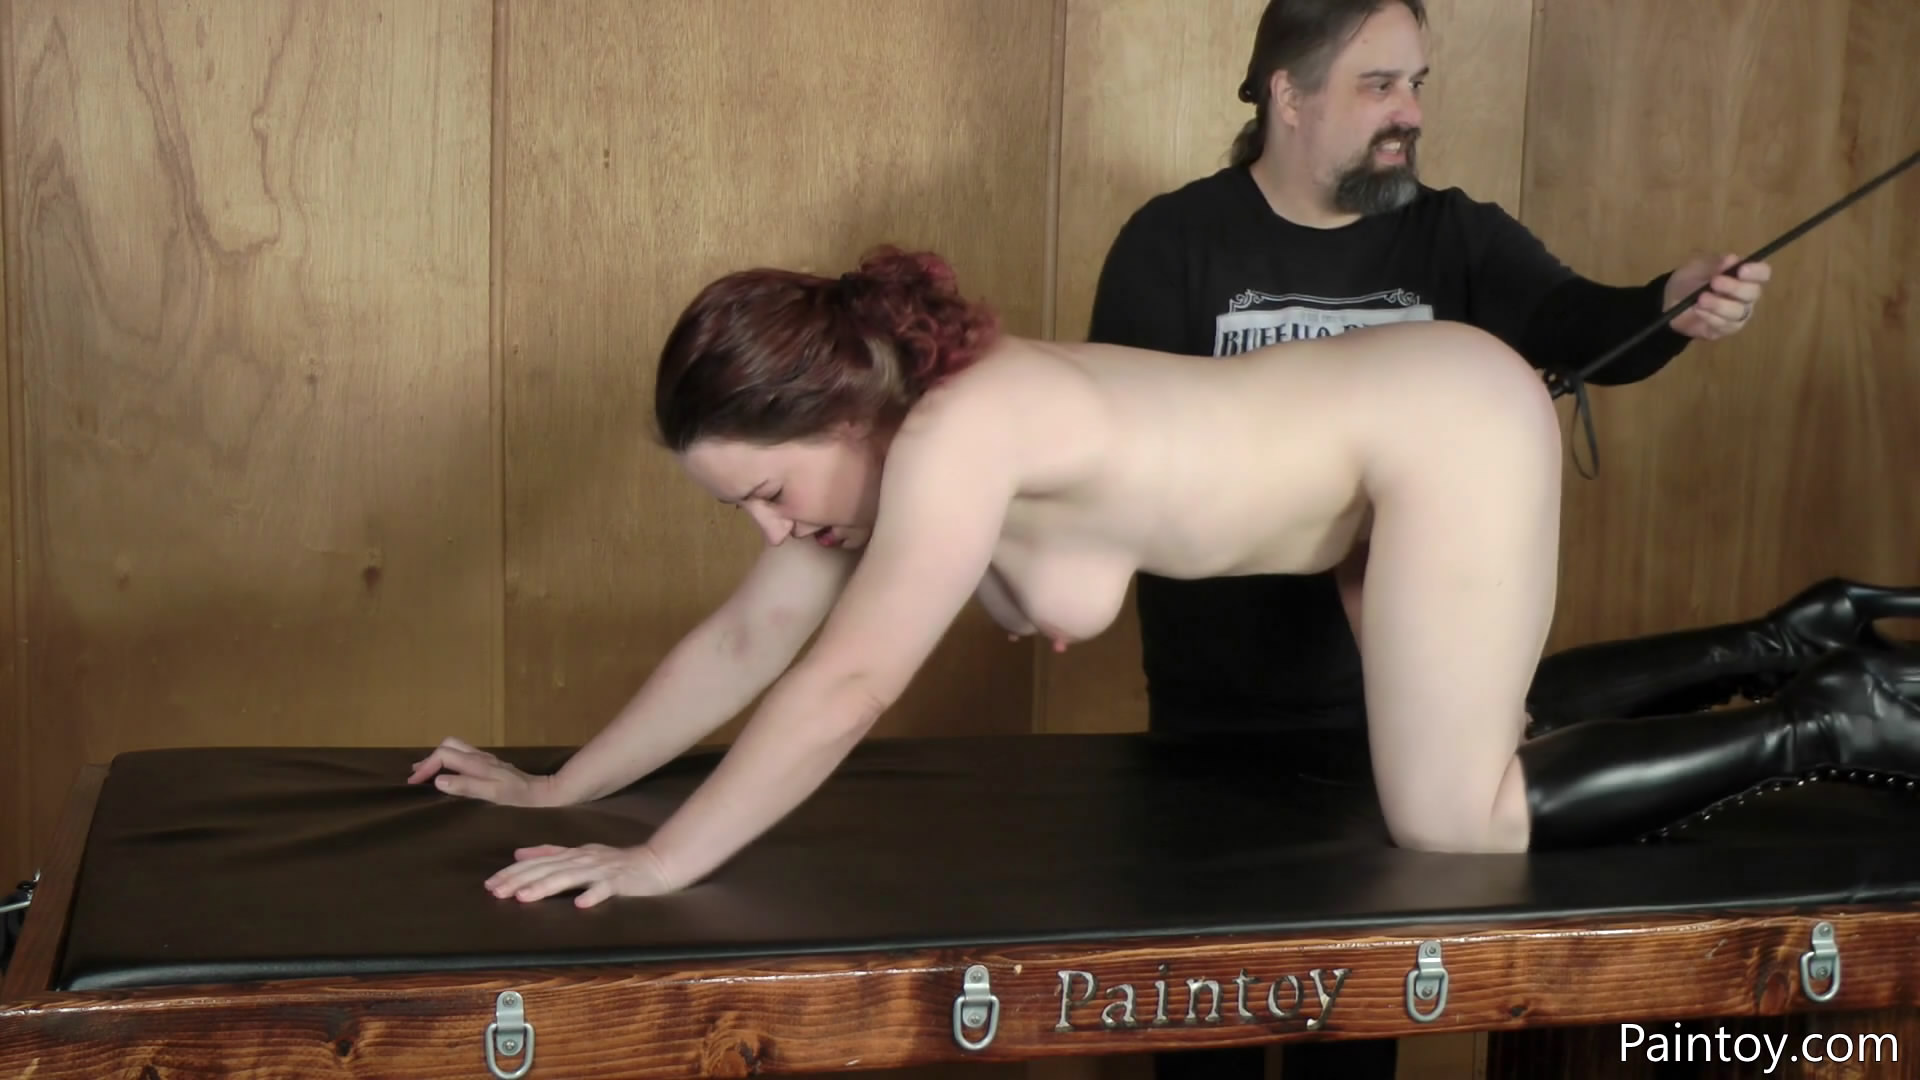 Paintoy – MP4/Full HD – Talia – Hope For Pain – 2